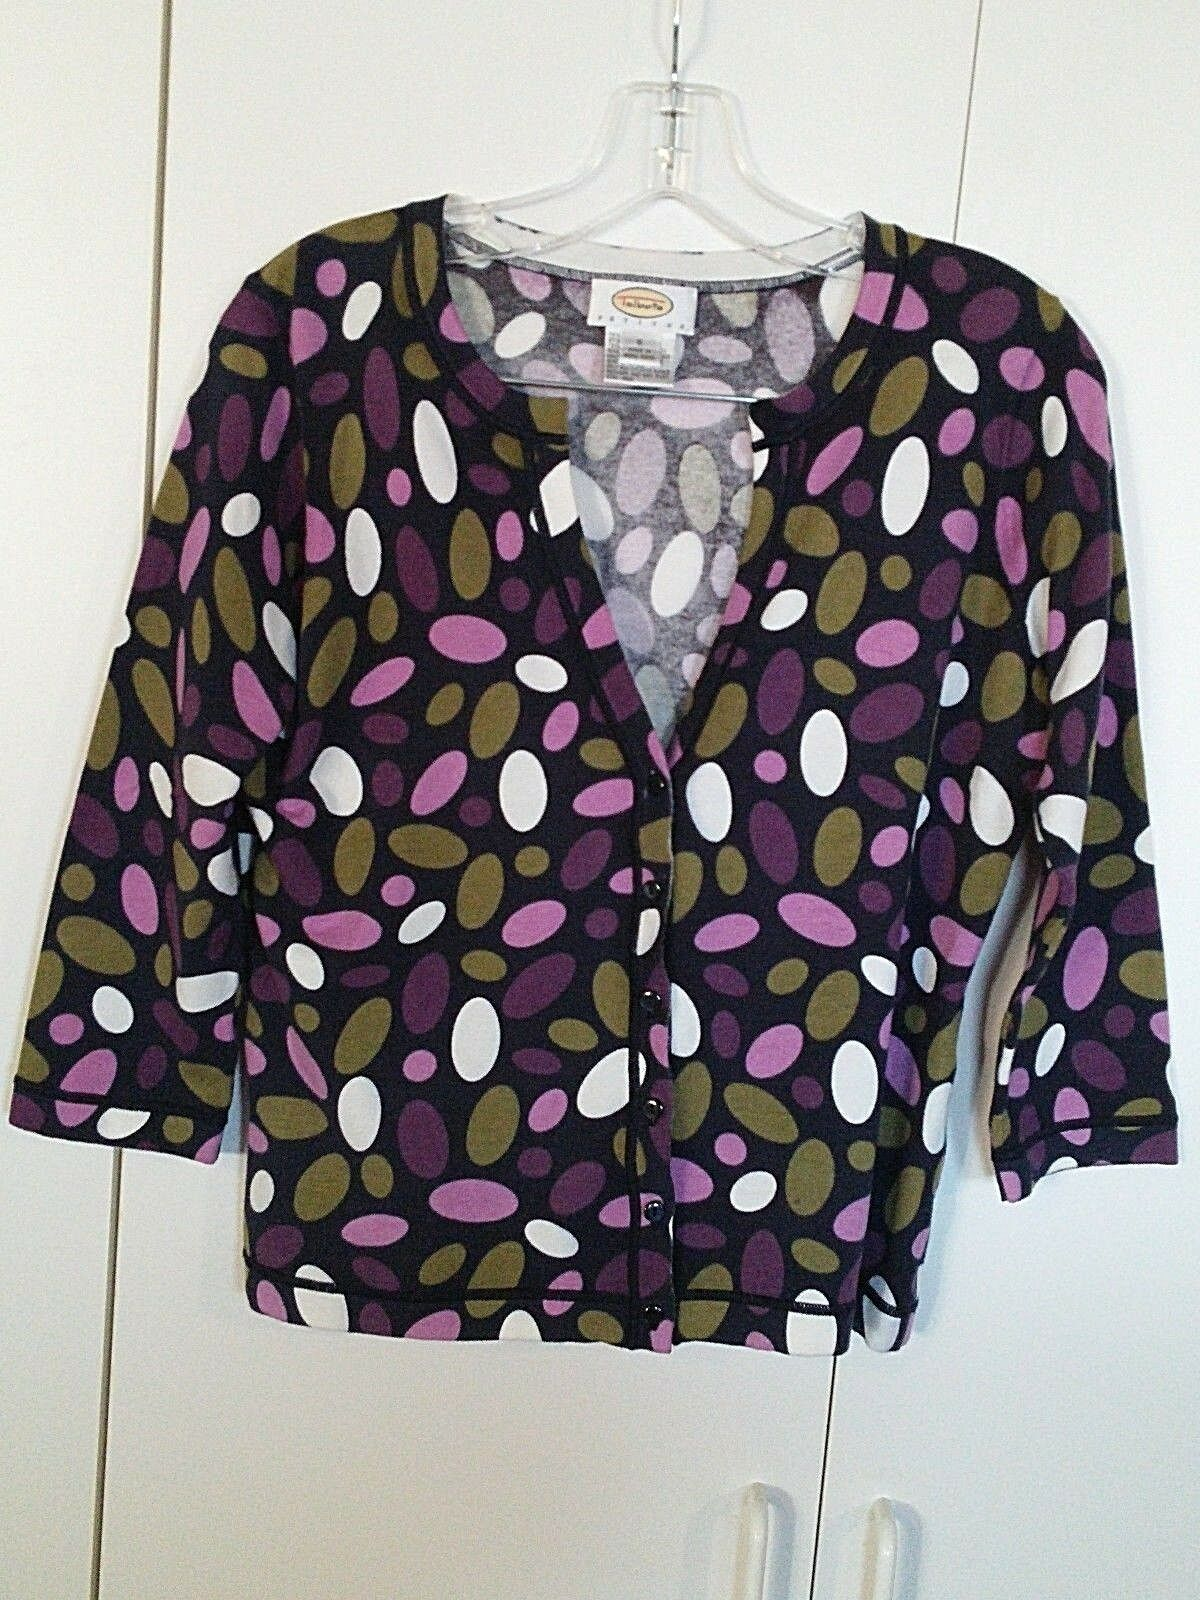 Primary image for TALBOTS LADIES LS CARDIGAN STRETCH COTTON BLEND CARDIGAN SWEATER-S-BARELY WORN